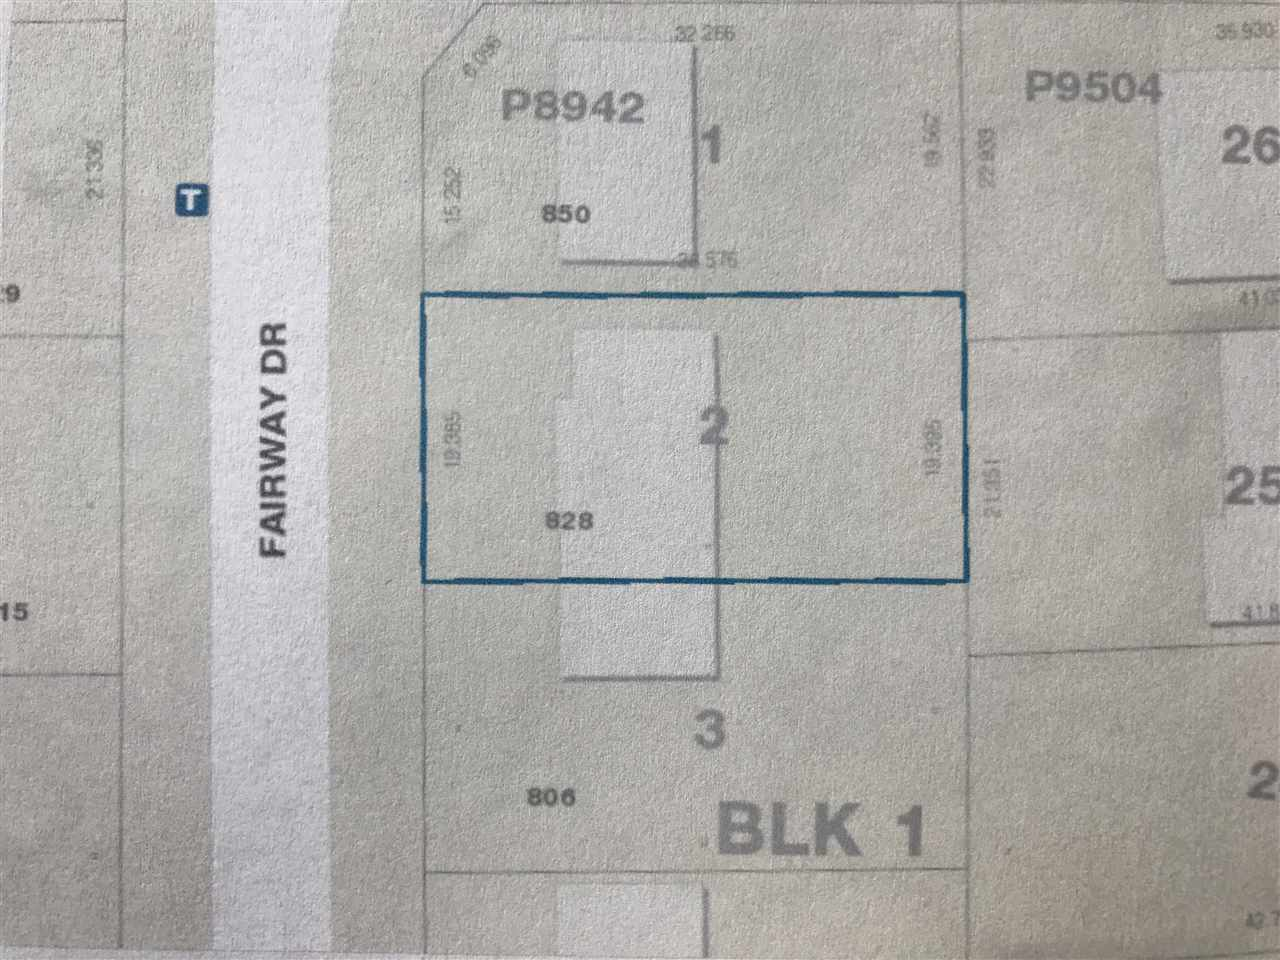 BUILD YOUR DREAM HOME ON THIS LARGE EASY BUILD LOT. Located close to most amenities, schools, skiing, golf, marinas, shopping, etc. This near flat building site is in North Vancouver's DESIRABLE DOLLARTON AREA. Plans available. All meas approx. Seller is an experienced builder and will enter into a building contract.